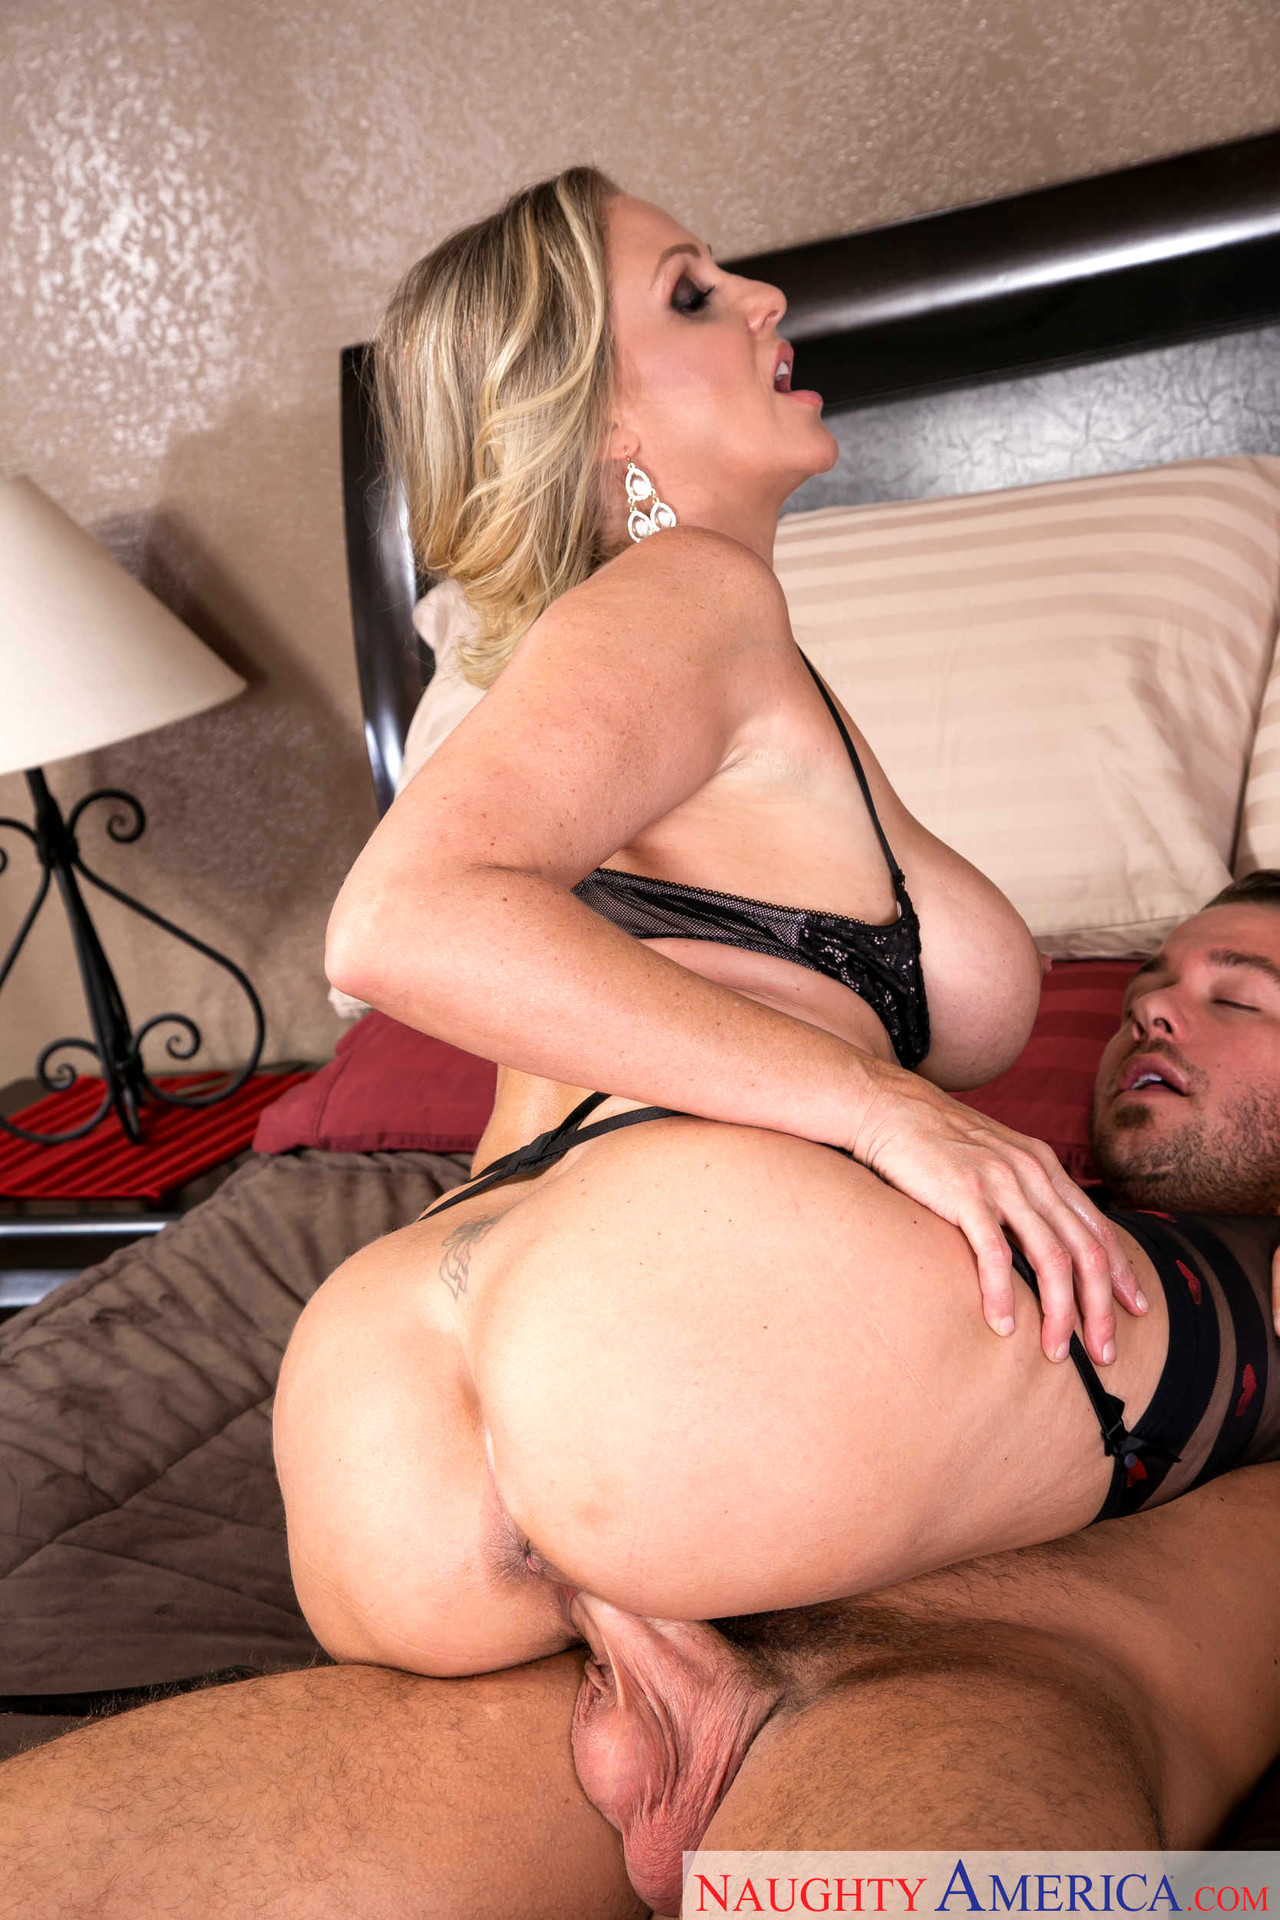 Julia ann naughty america